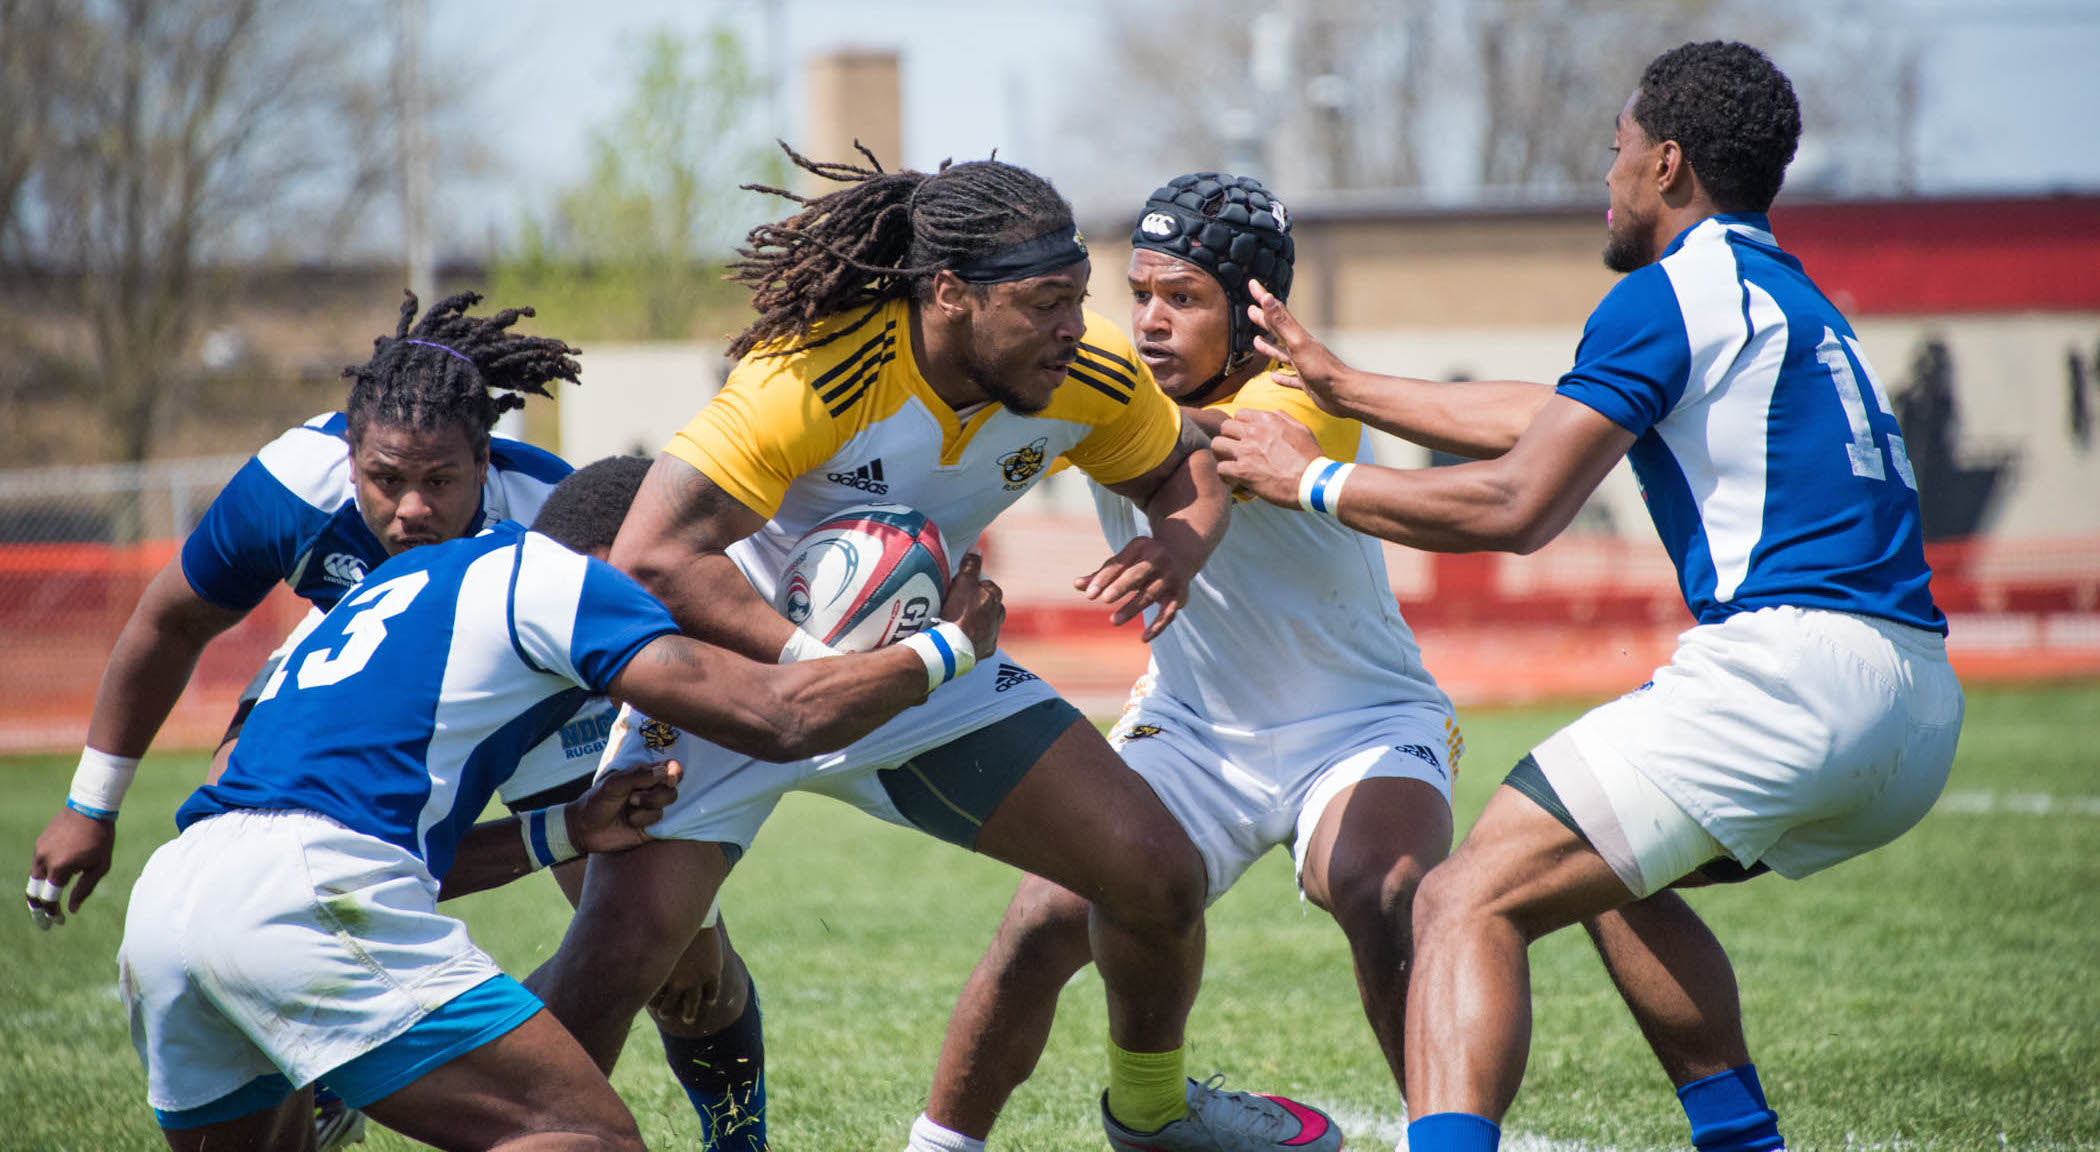 Christian Adams in action for AIC Rugby. Spring 2016. Kevin Mercer photo.